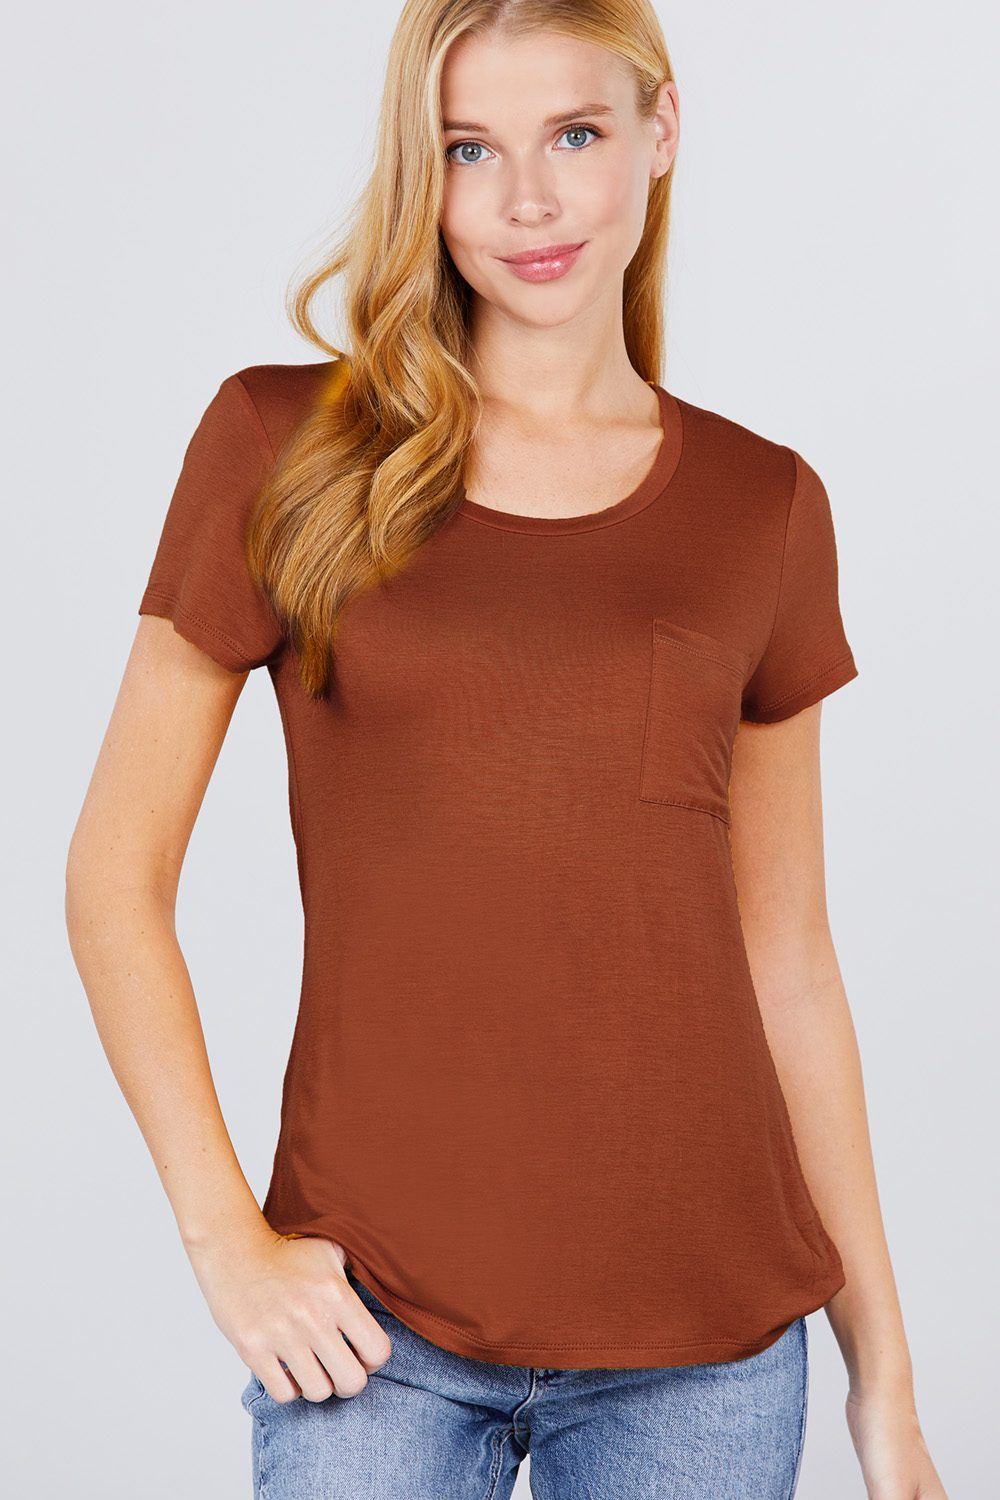 Active Boutique Rust Short Sleeve Scoop Neck Top With Pocket